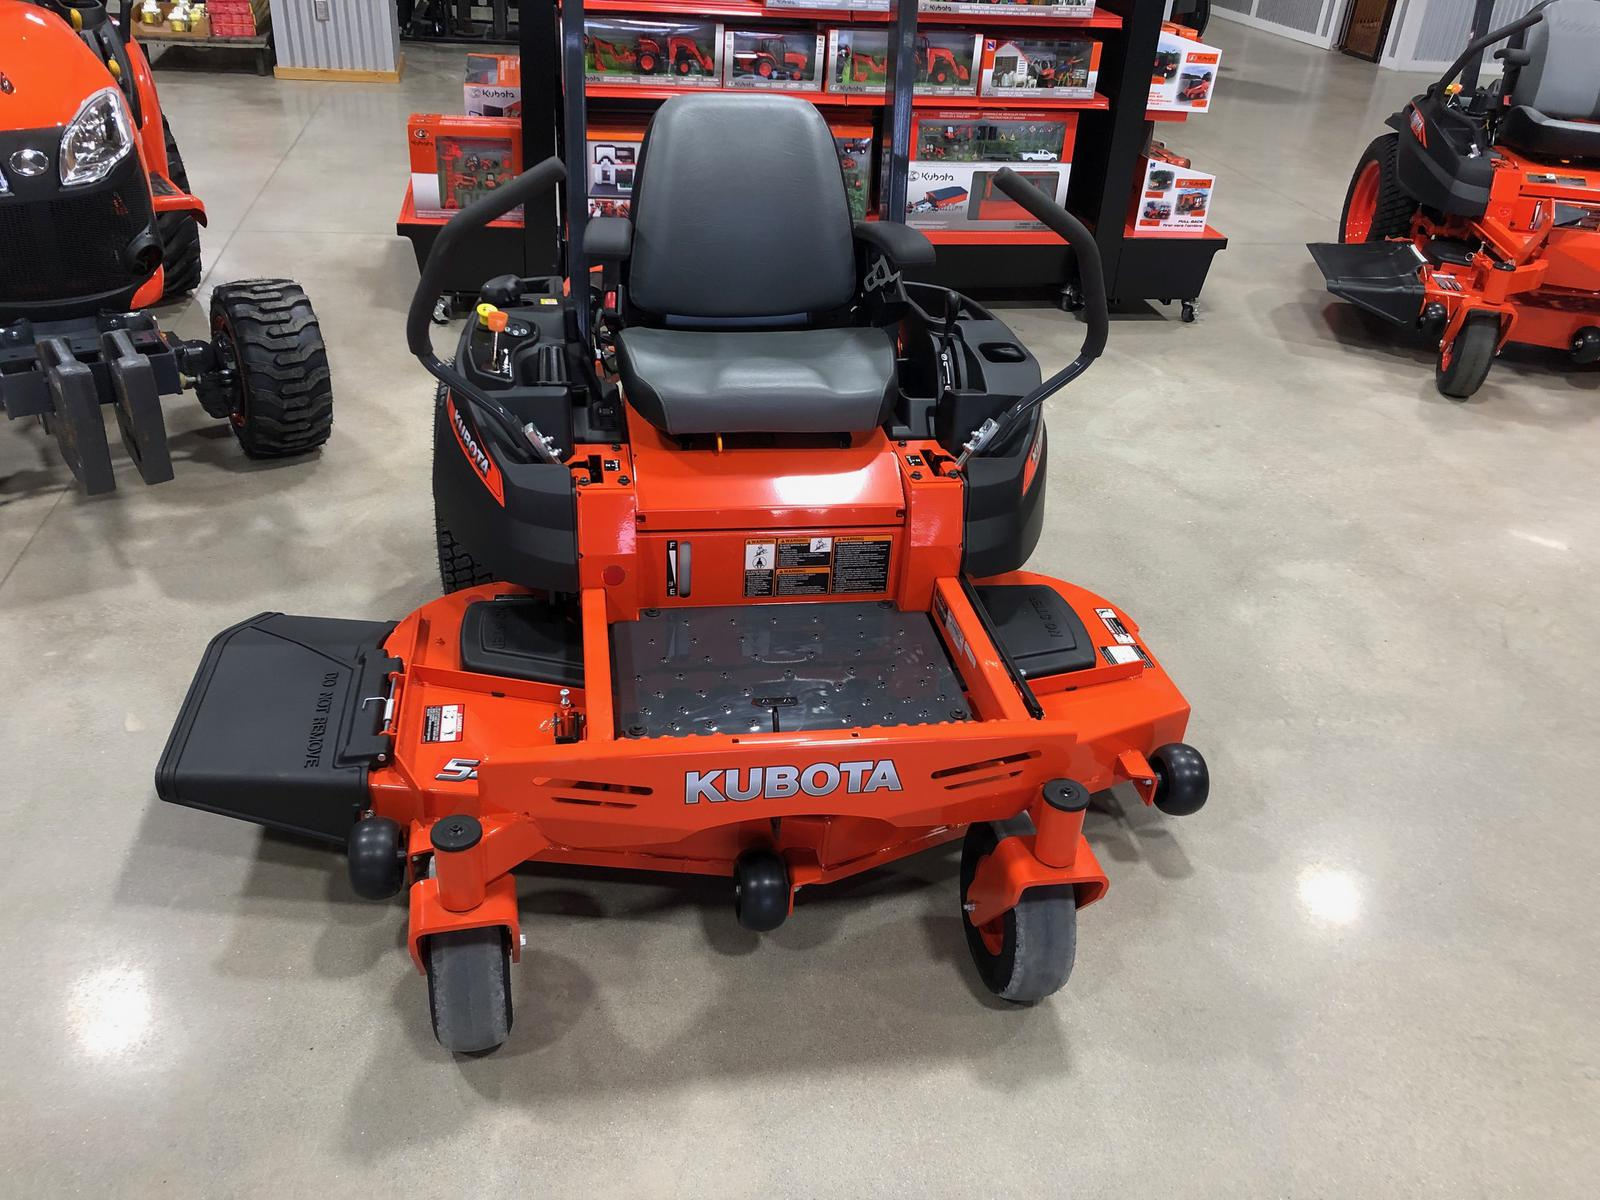 Inventory from Honda Power Equipment, Little Wonder and